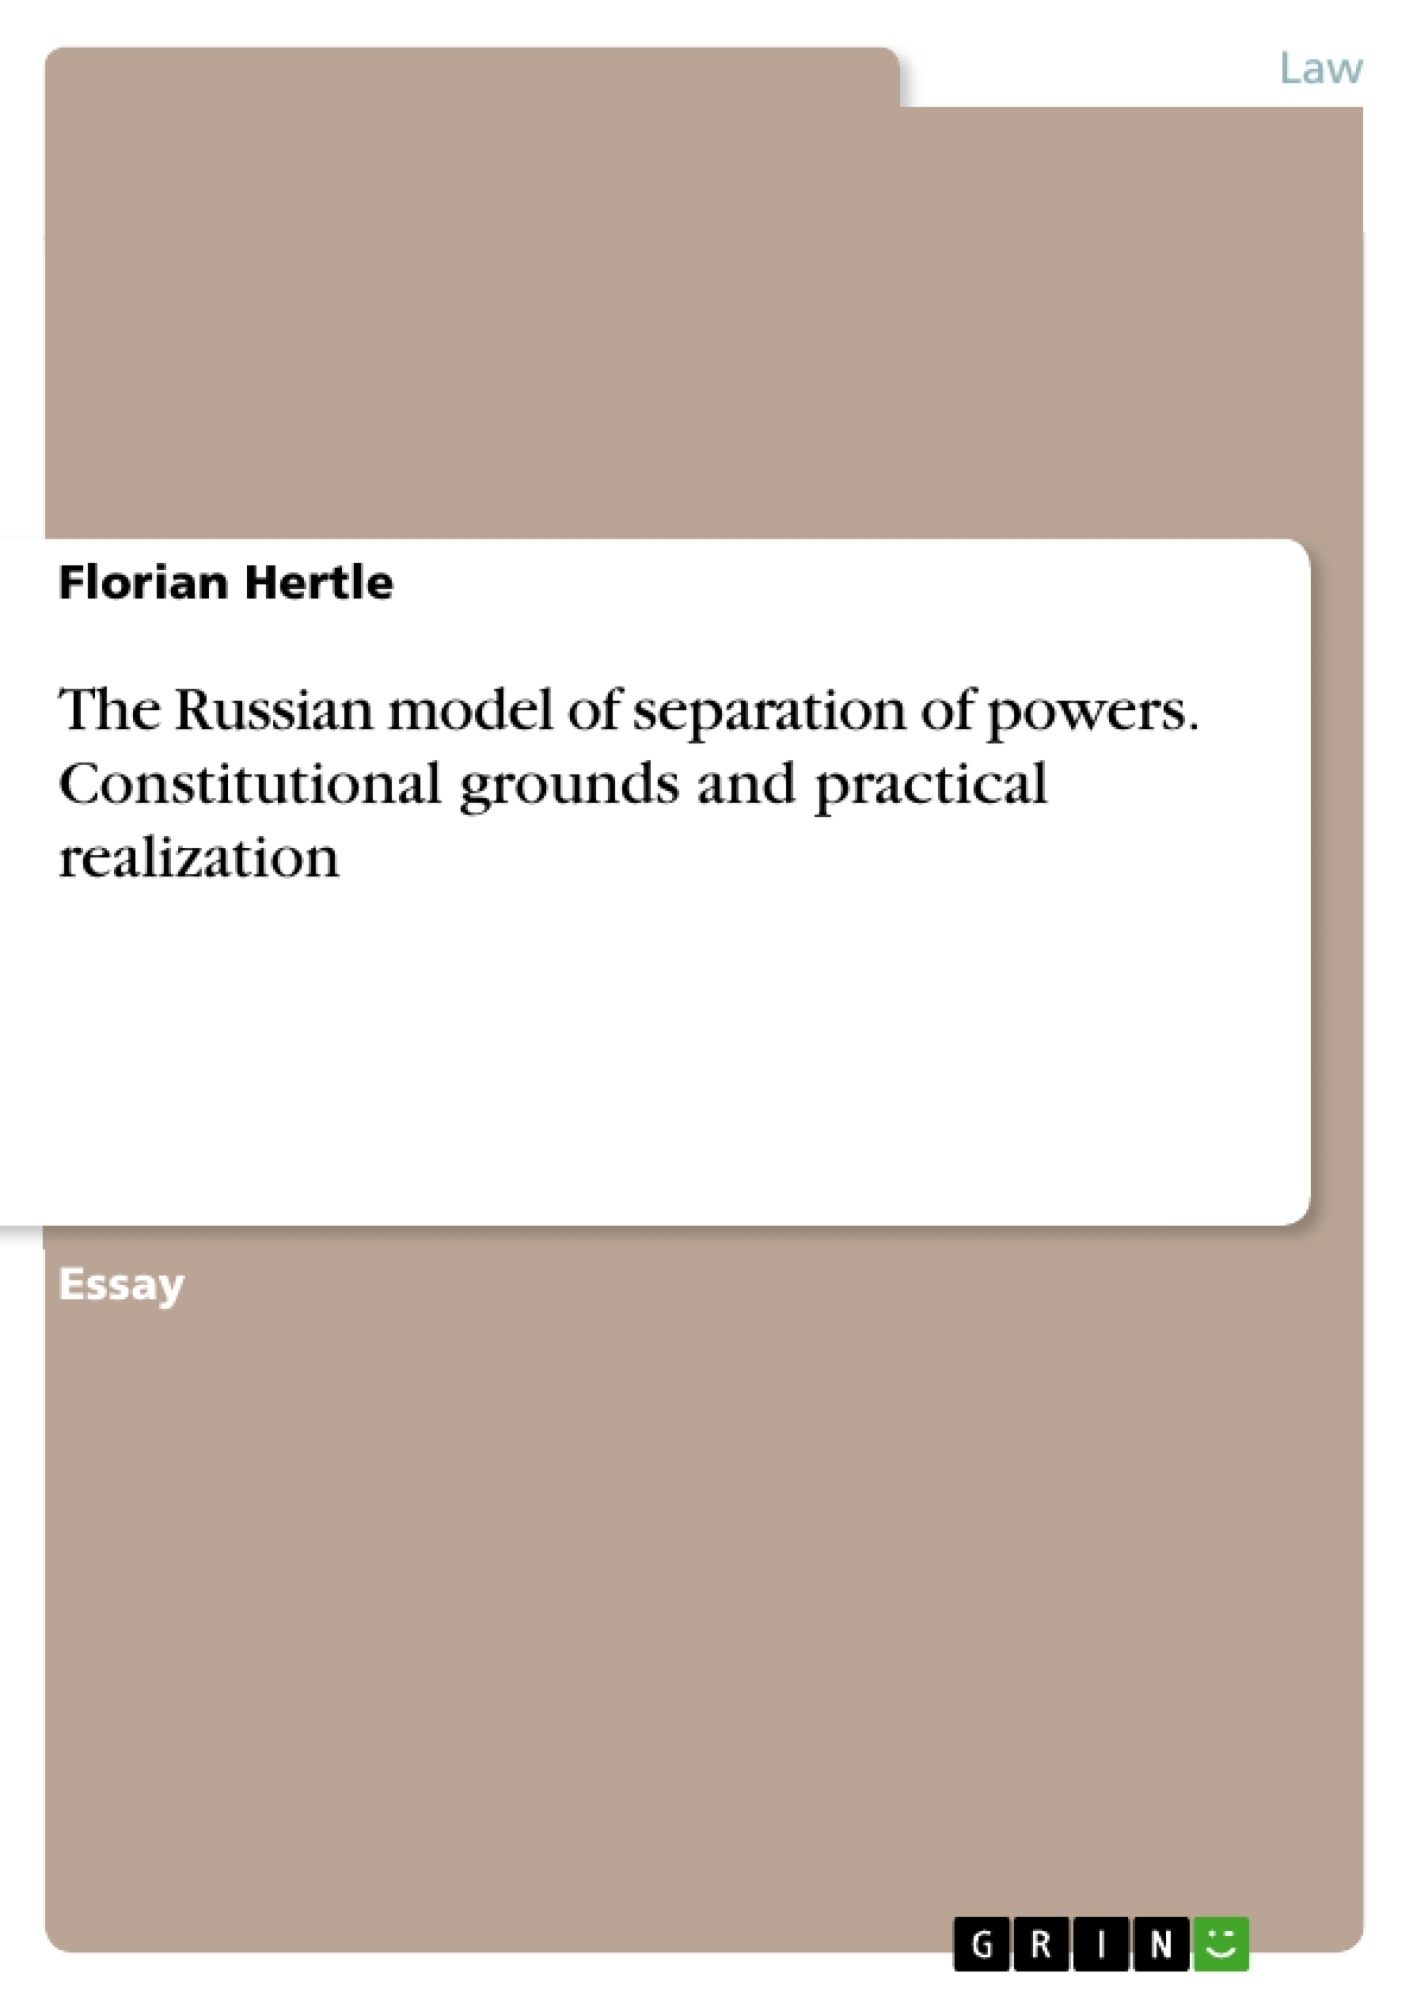 Title: The Russian model of separation of powers. Constitutional grounds and practical realization